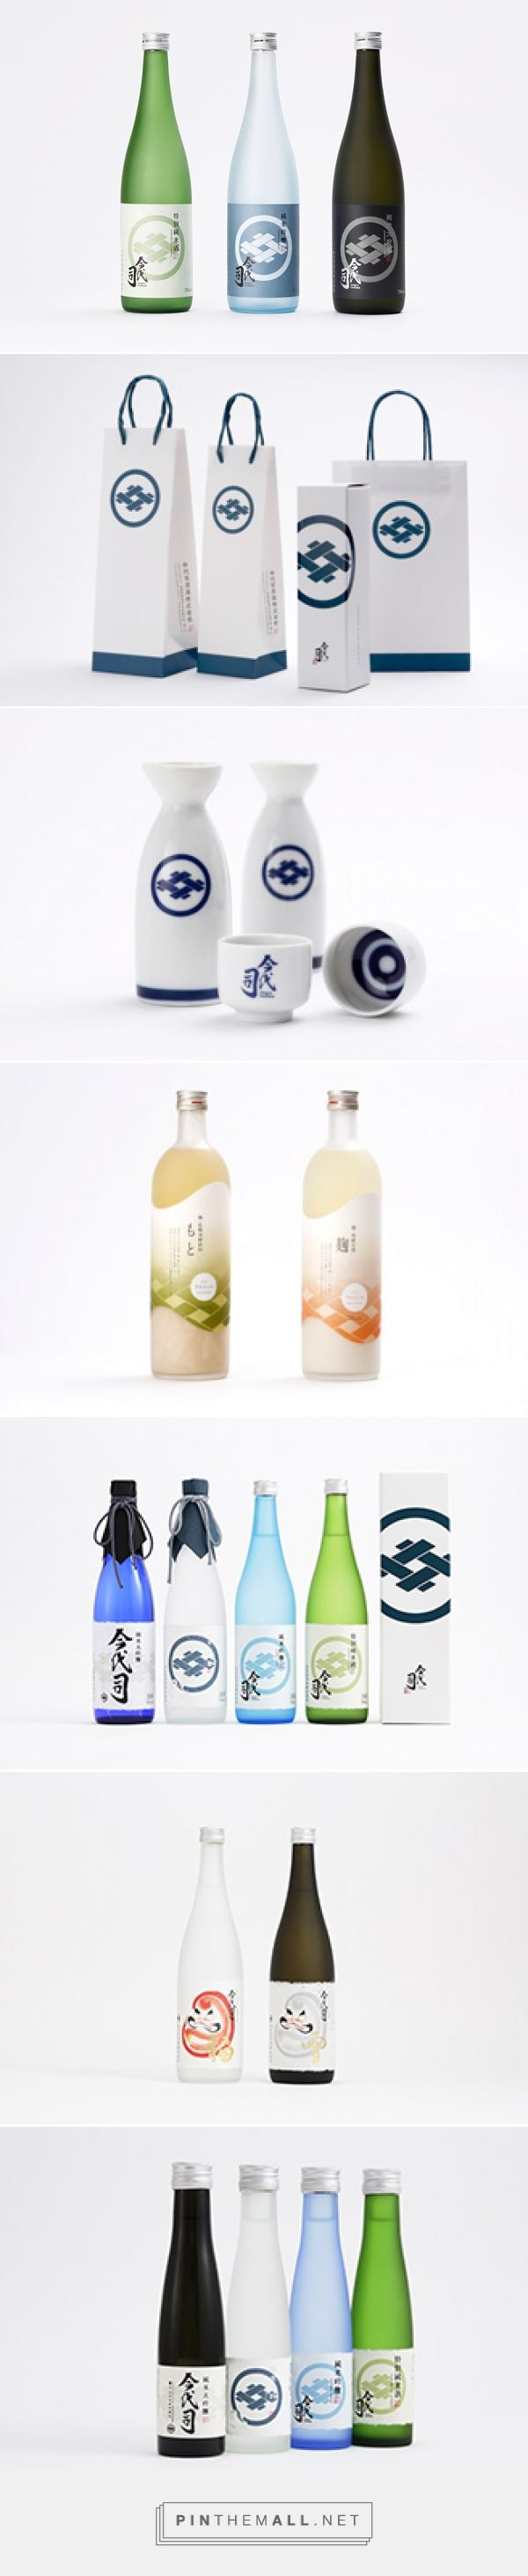 Graphic design, logo and packaging for Imayotsukasa Sake Brewery by Studio Cultivate via AWATSUJI design curated by Packaging Diva PD. Who want's some sake now?